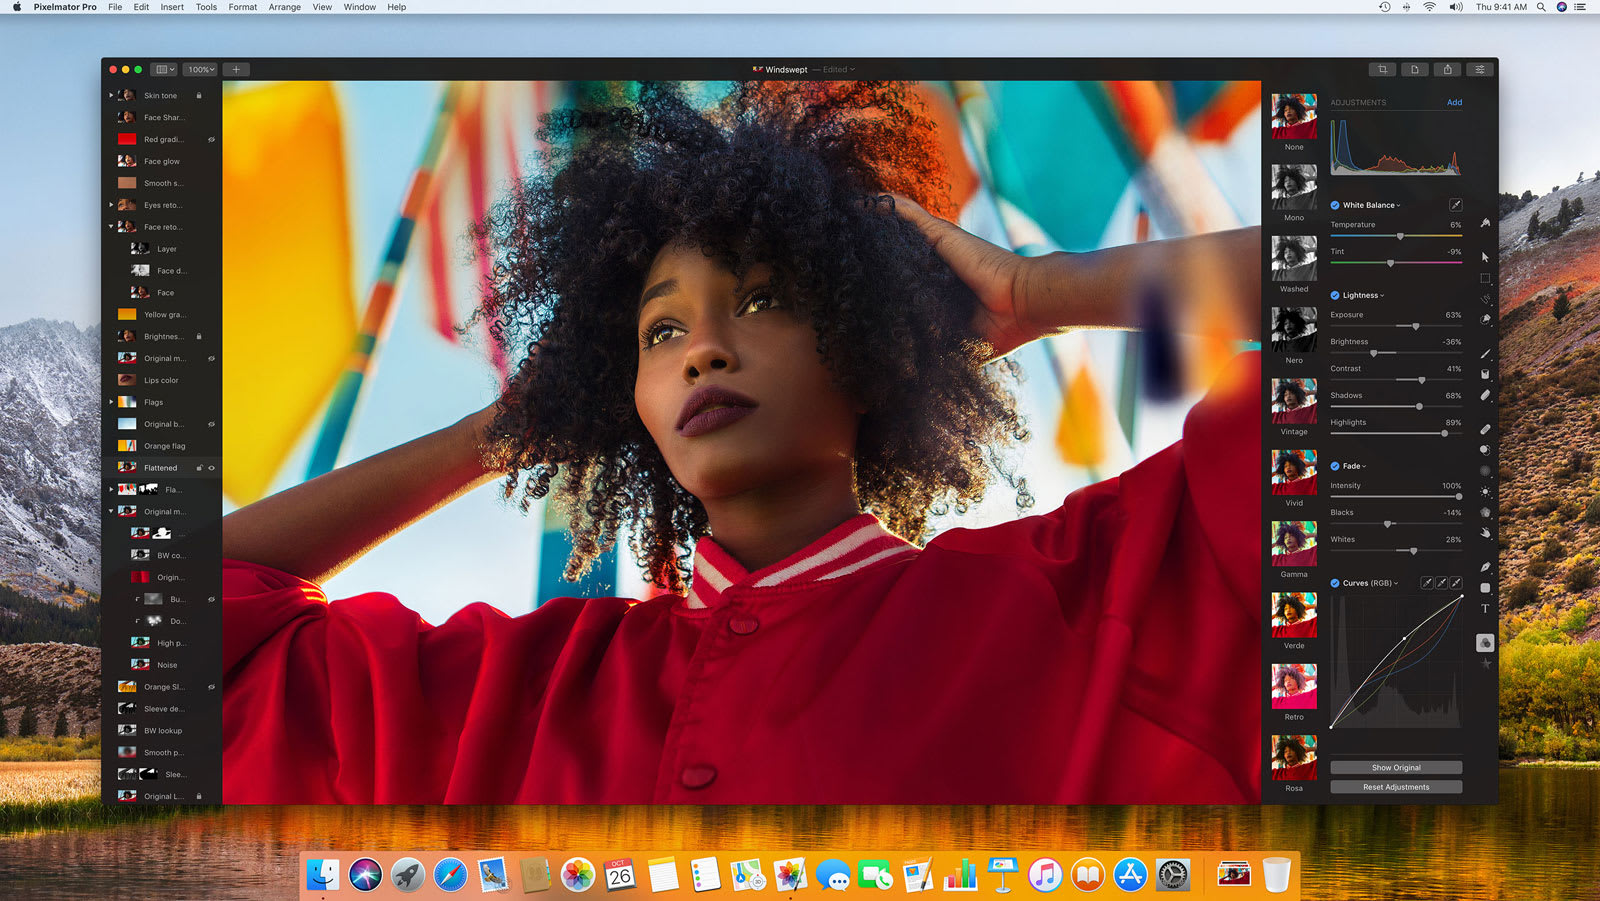 Pixelmator Pro is an AI-powered Photoshop alternative for